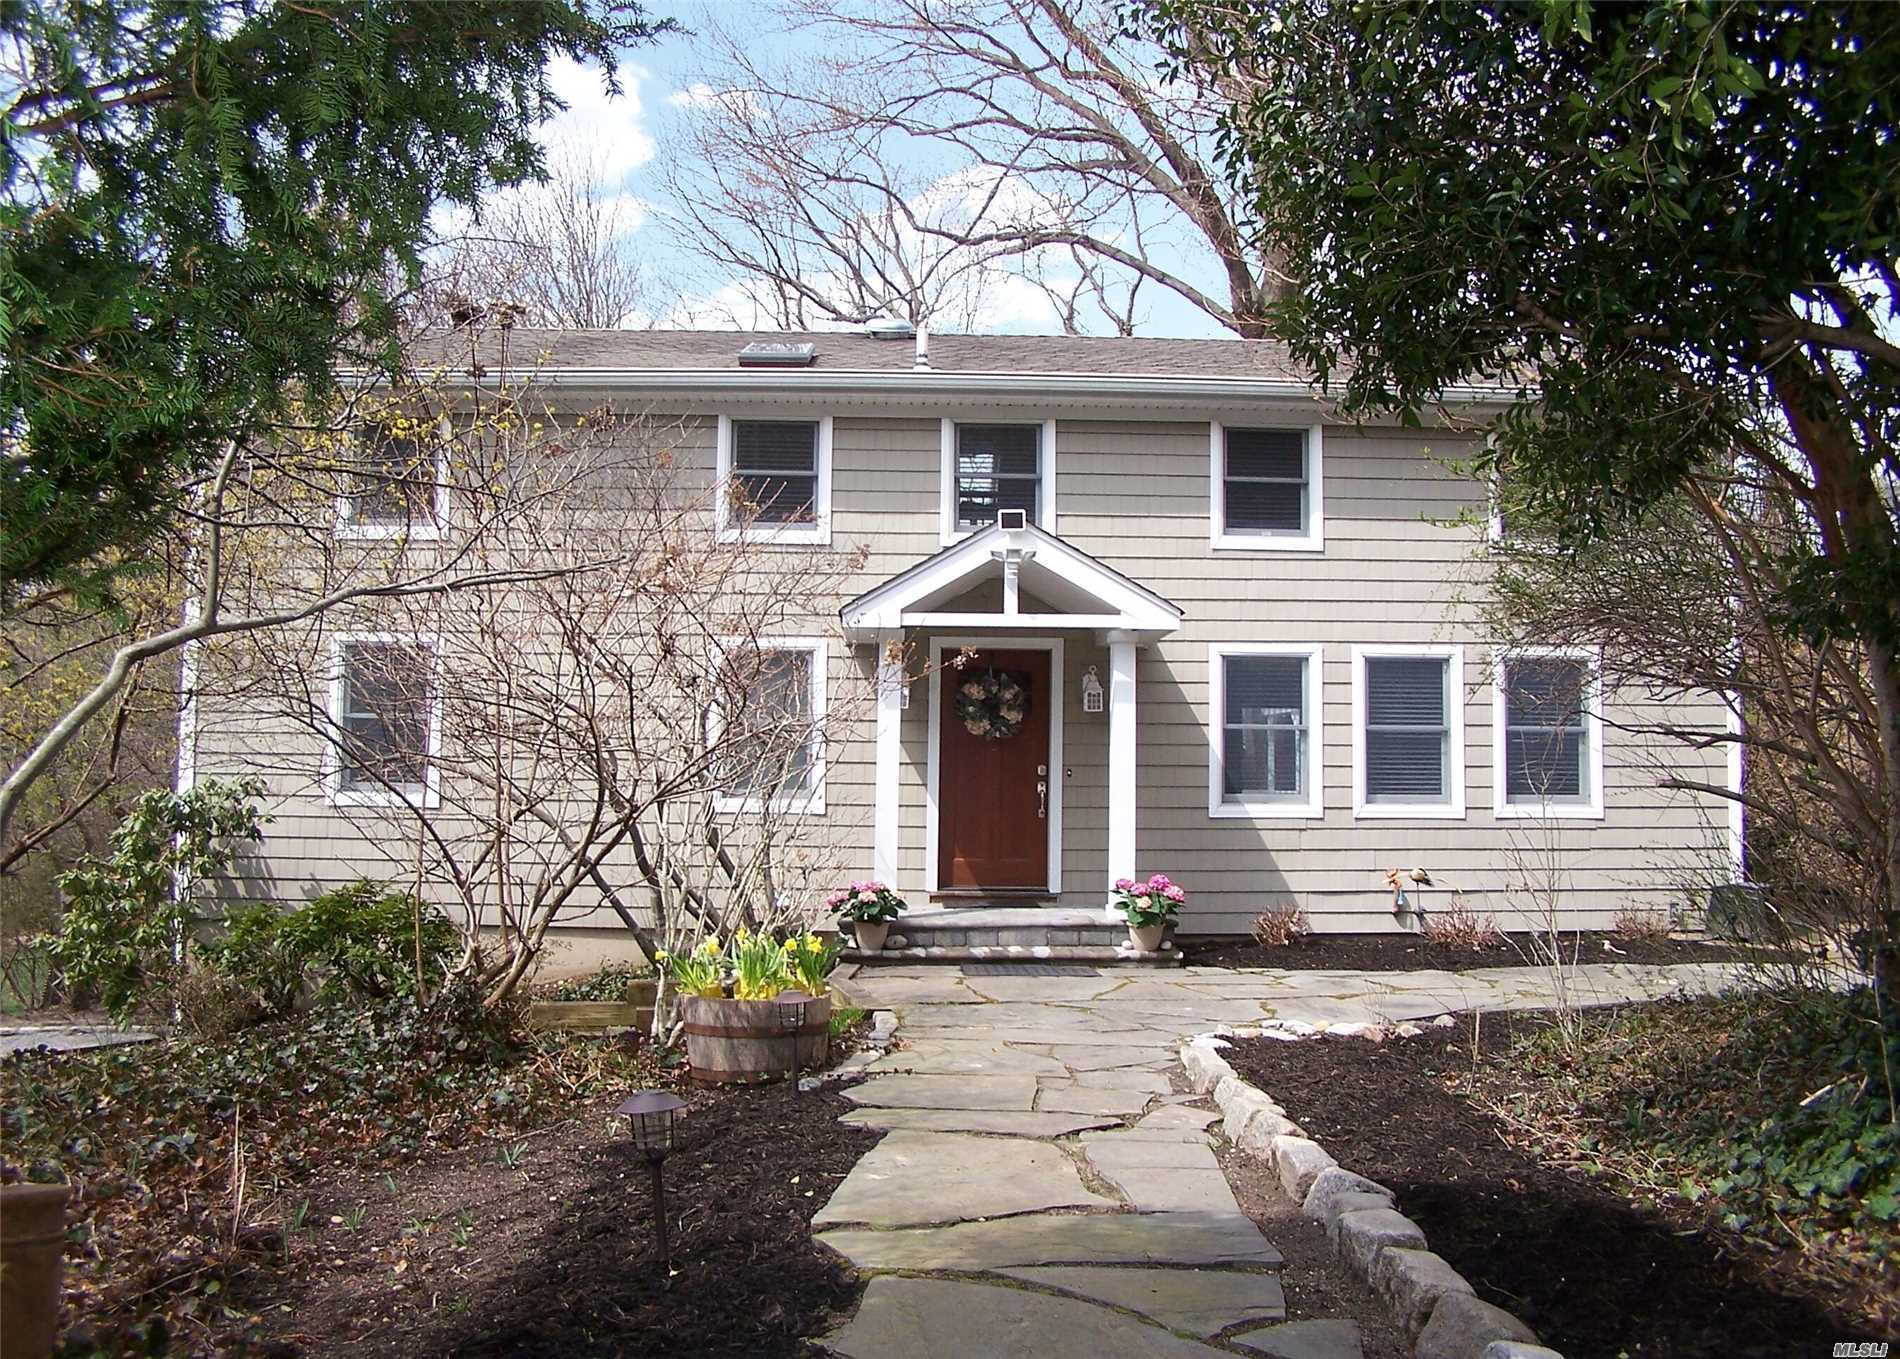 Diamond condition, New kitchen new bathrooms CAC 6 years old new siding , wood floor refinished 2 skylight on 2nd floor. Great location close to stony Brook Village. Basement has walk out to yard. Quiet area .. Dining room with sliding glass doors to outside deck. Furniture could be sold with house